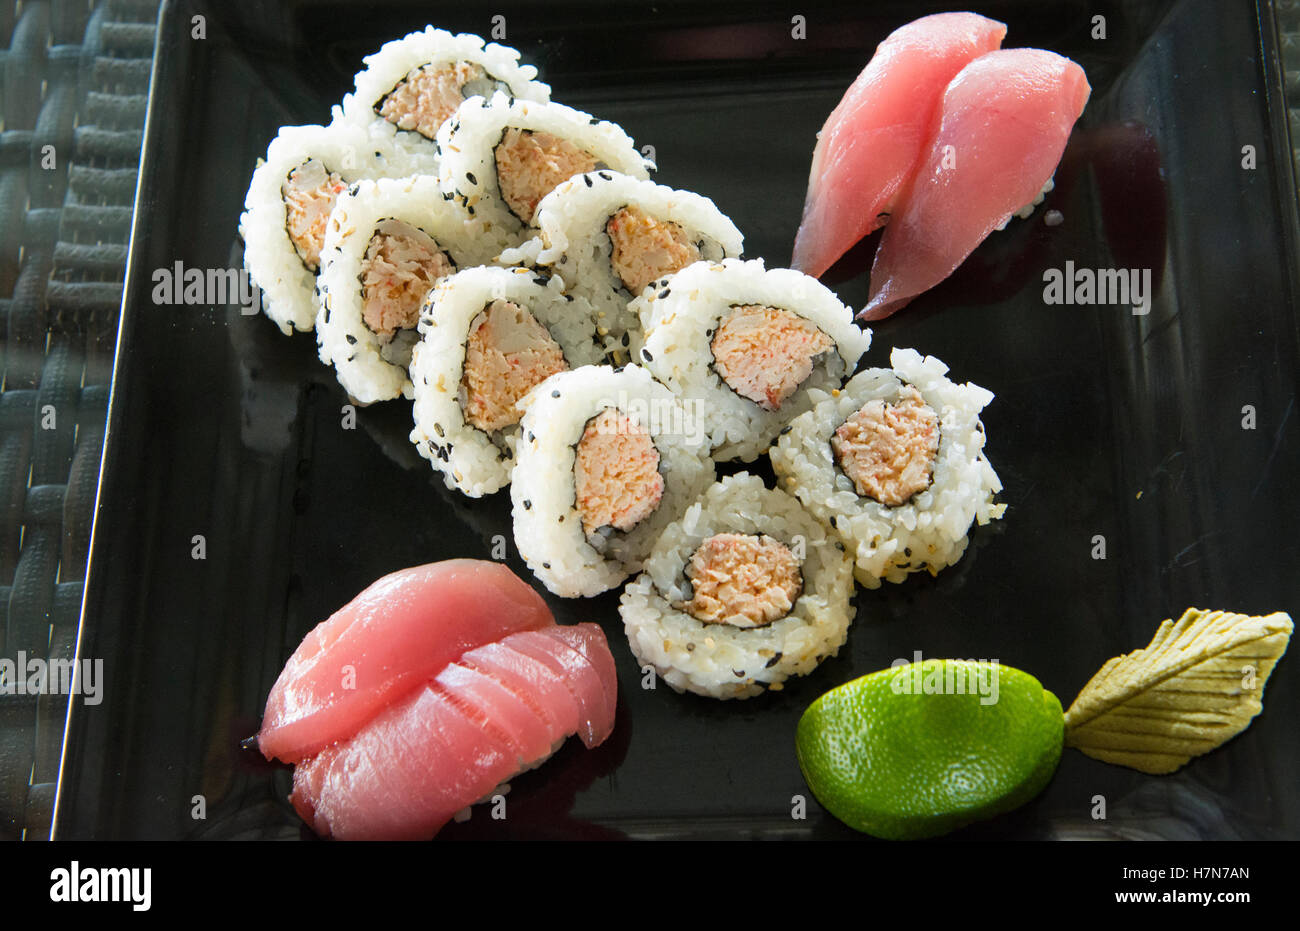 Pohnpei Micronesia beautiful sushi colorful fish food spiced crab in restaurant - Stock Image